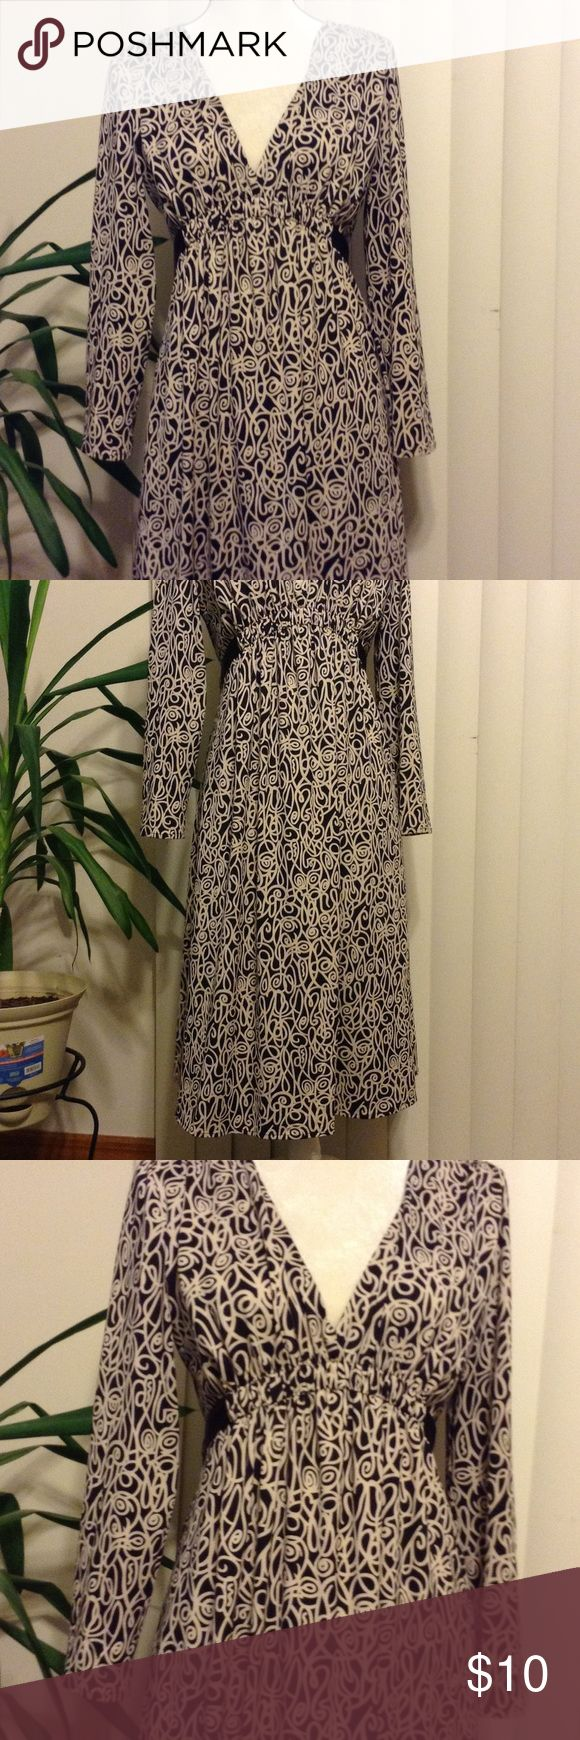 Women's empire waist dress Beautifully patterned cream and white long sleeve empire style dressed. Elastic at waist. Satin like attached black tie that falls to the back of dress. Polyester/Spandex blend. Size Large Lapis Dresses Long Sleeve